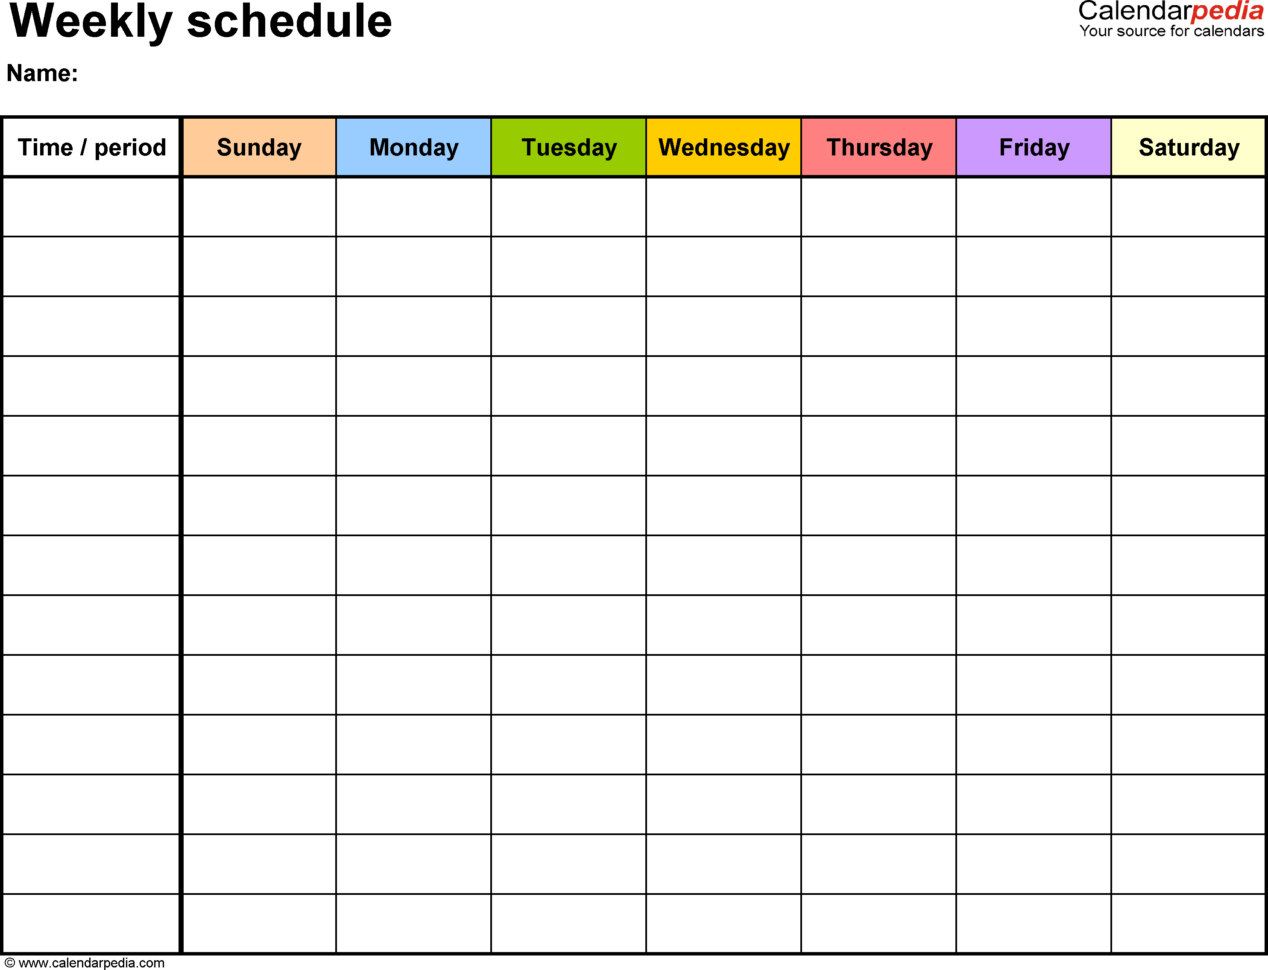 Free Weekly Schedule Templates For Excel   18 Templates To Monthly Employee Work Schedule Template Excel